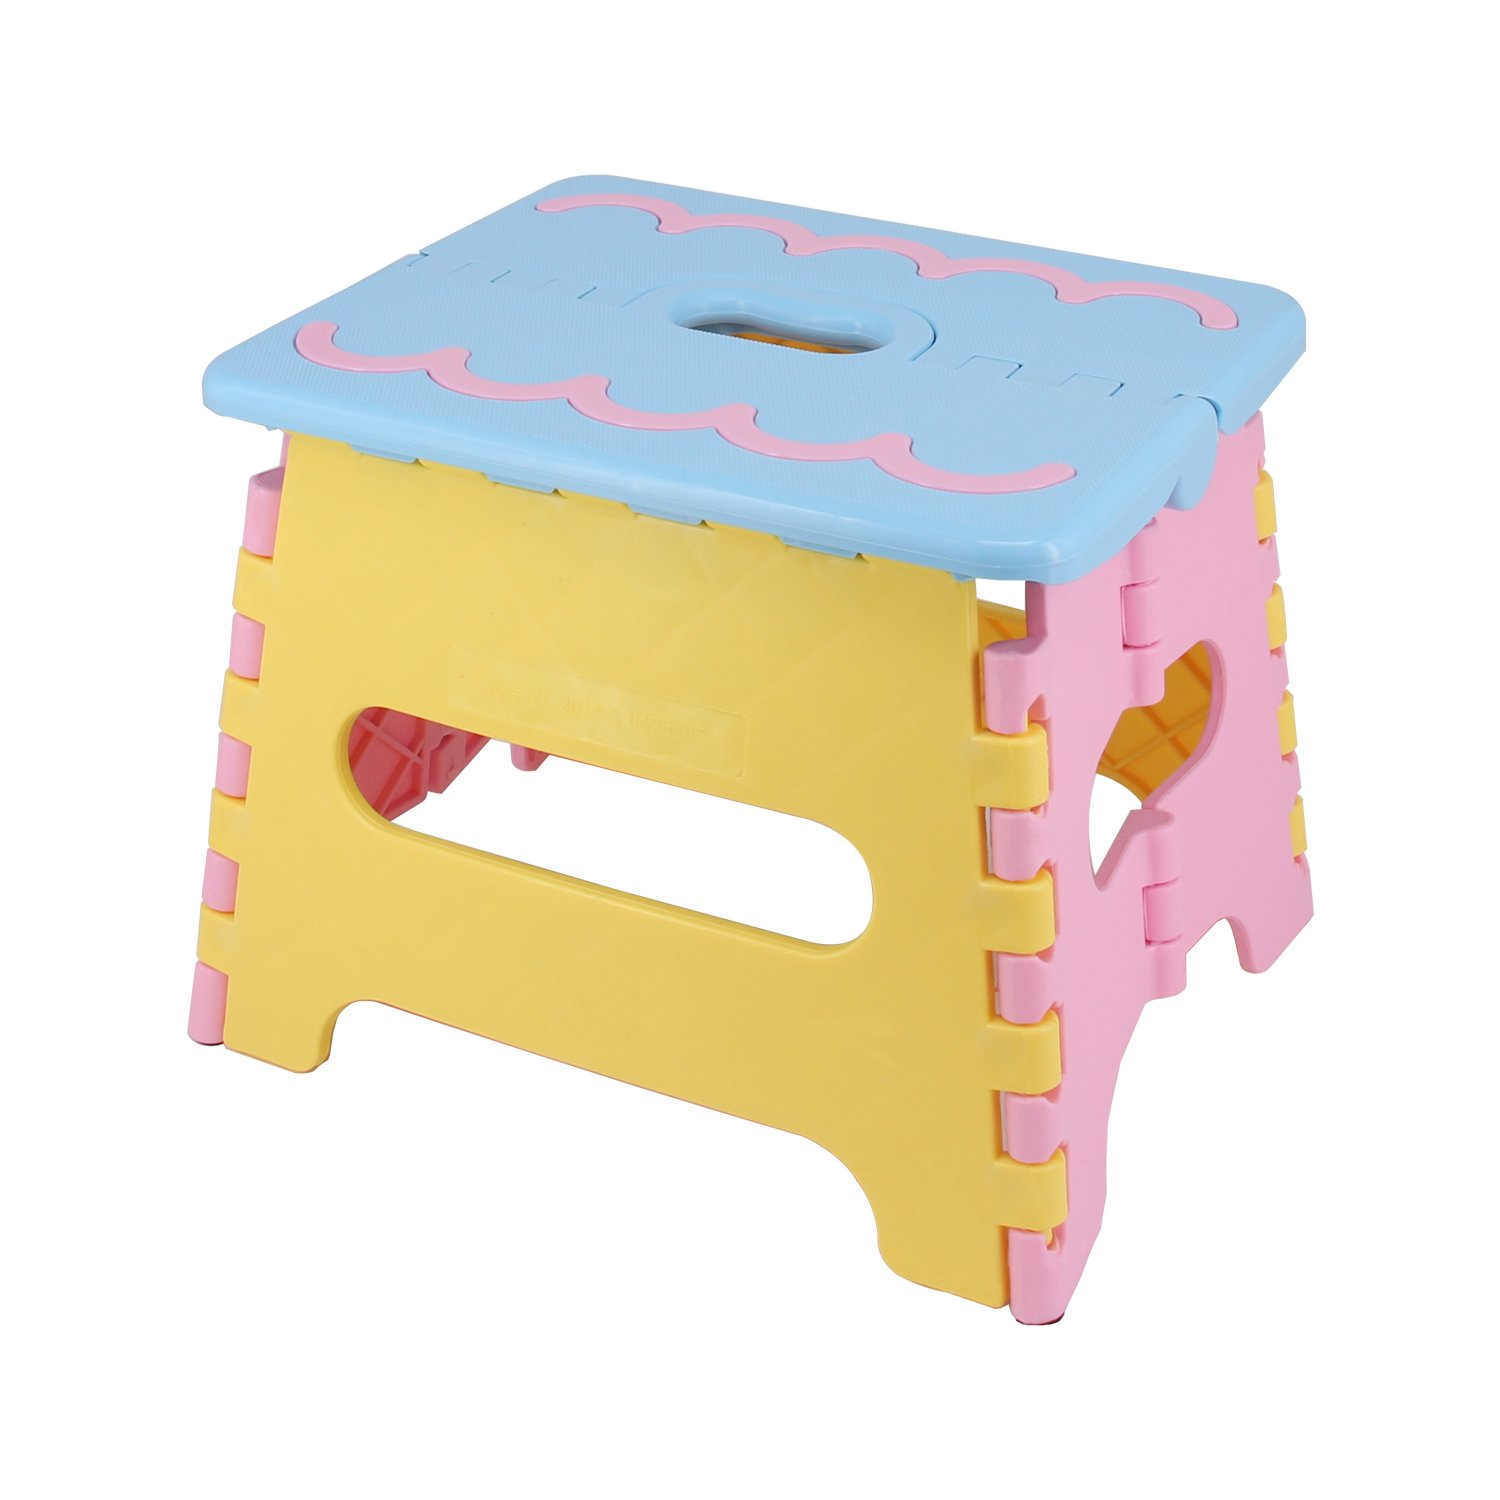 Blue Holds up to 250 LBS. Kitchen Garden Bathroom Heavy Duty Outdoor Foldable Stool 7Portable Non Slip Folding Step Stool For Kids /& Adults